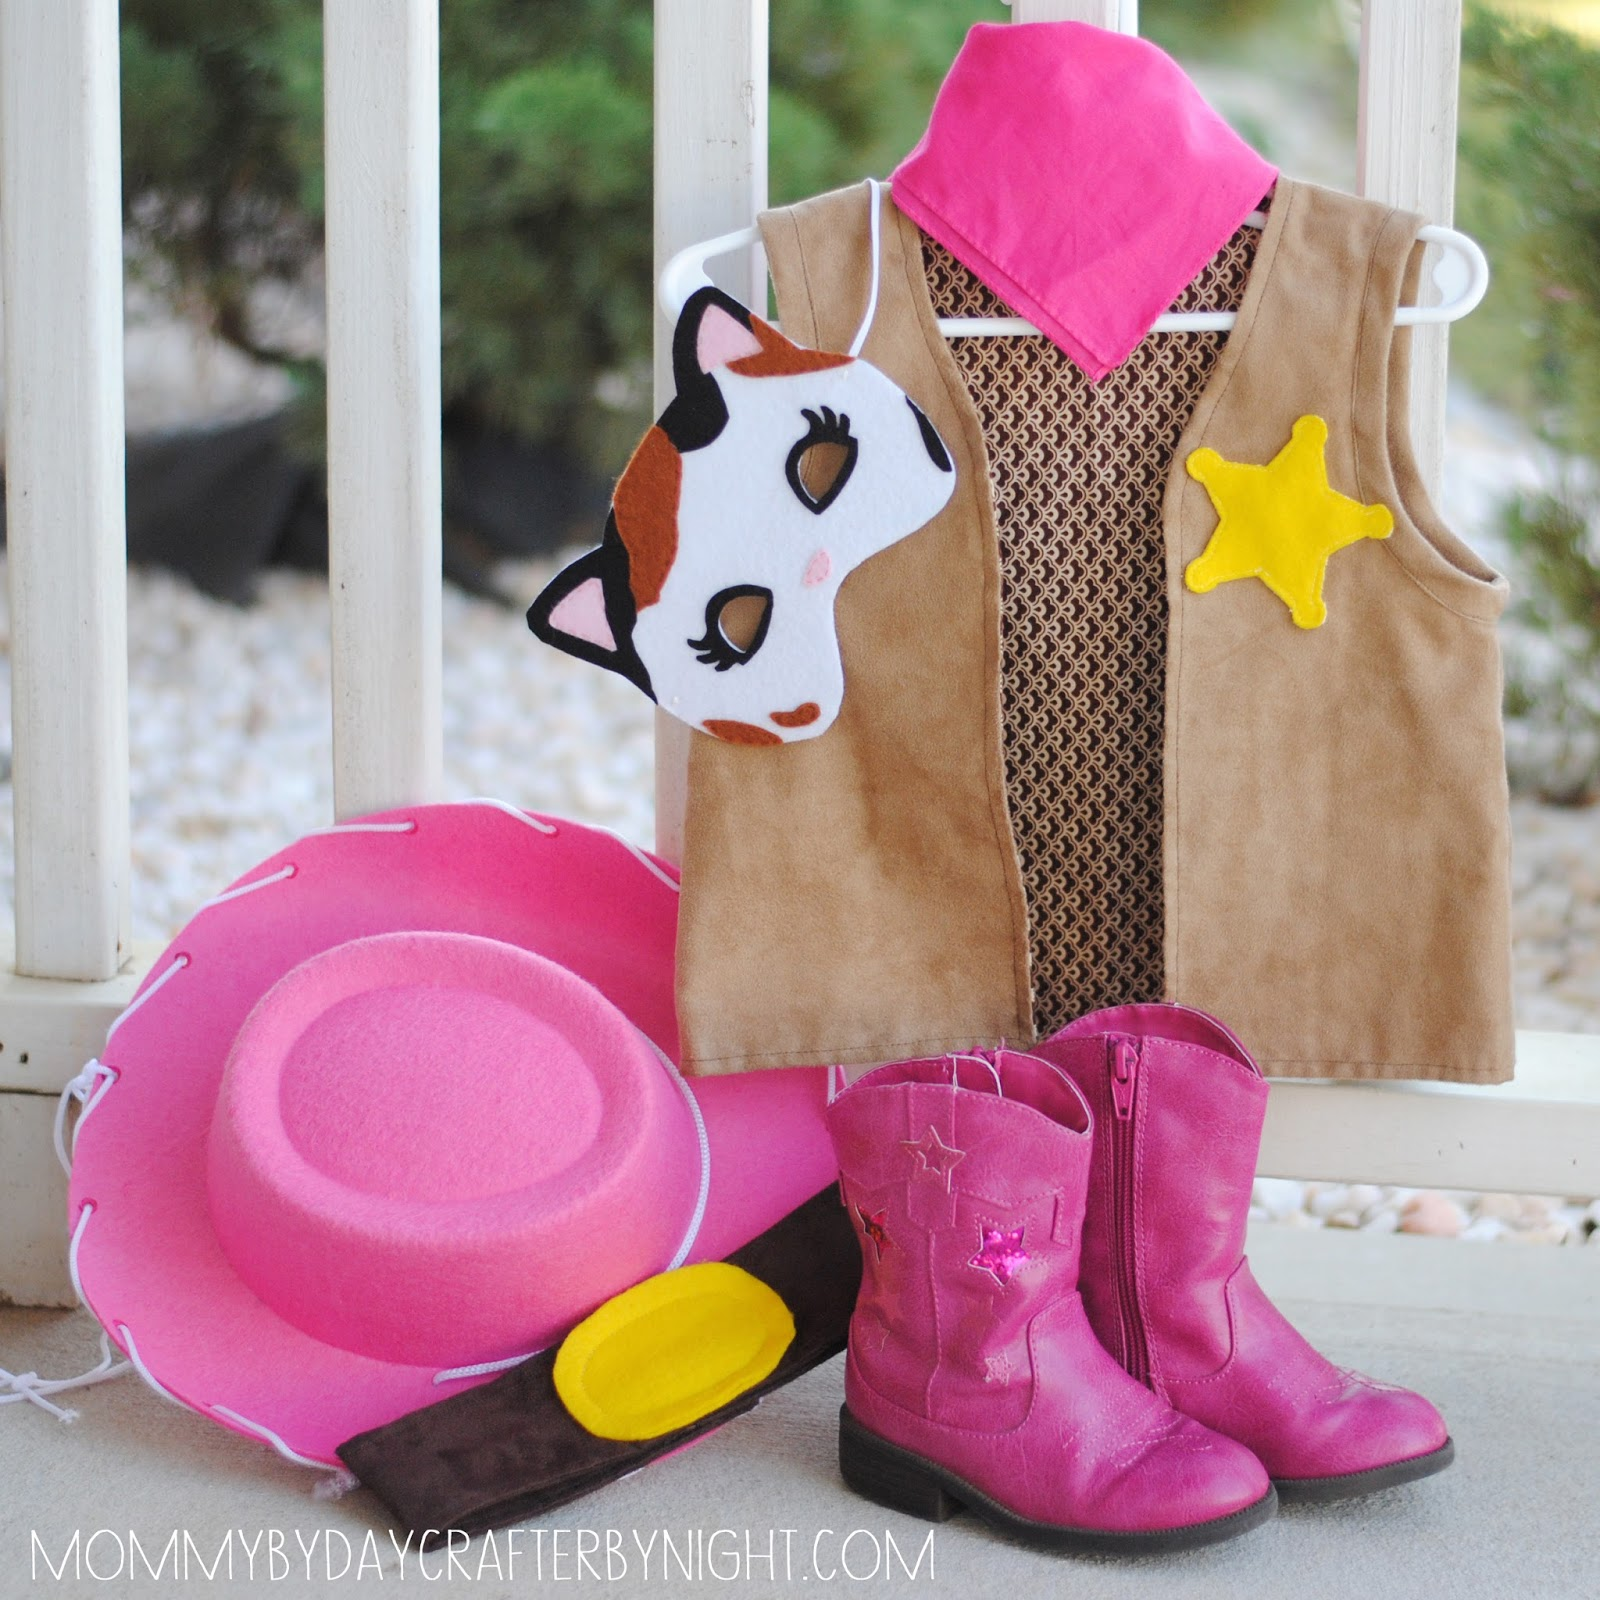 Mommy by day crafter by night diy sheriff callie costume diy sheriff callie costume solutioingenieria Gallery